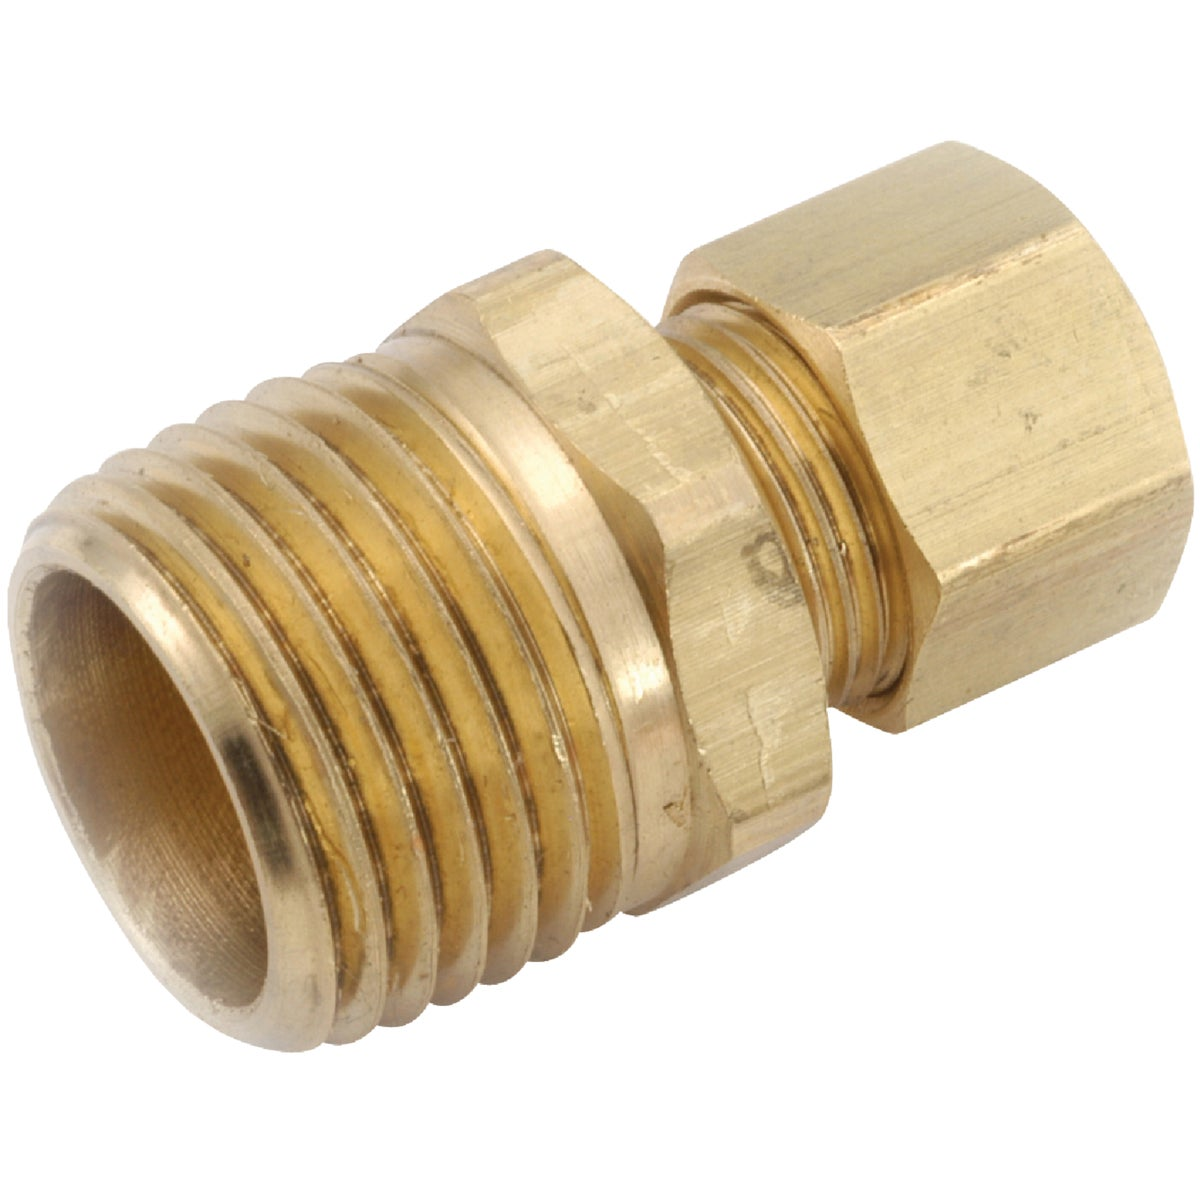 7/8X3/4 MALE CONNECTOR